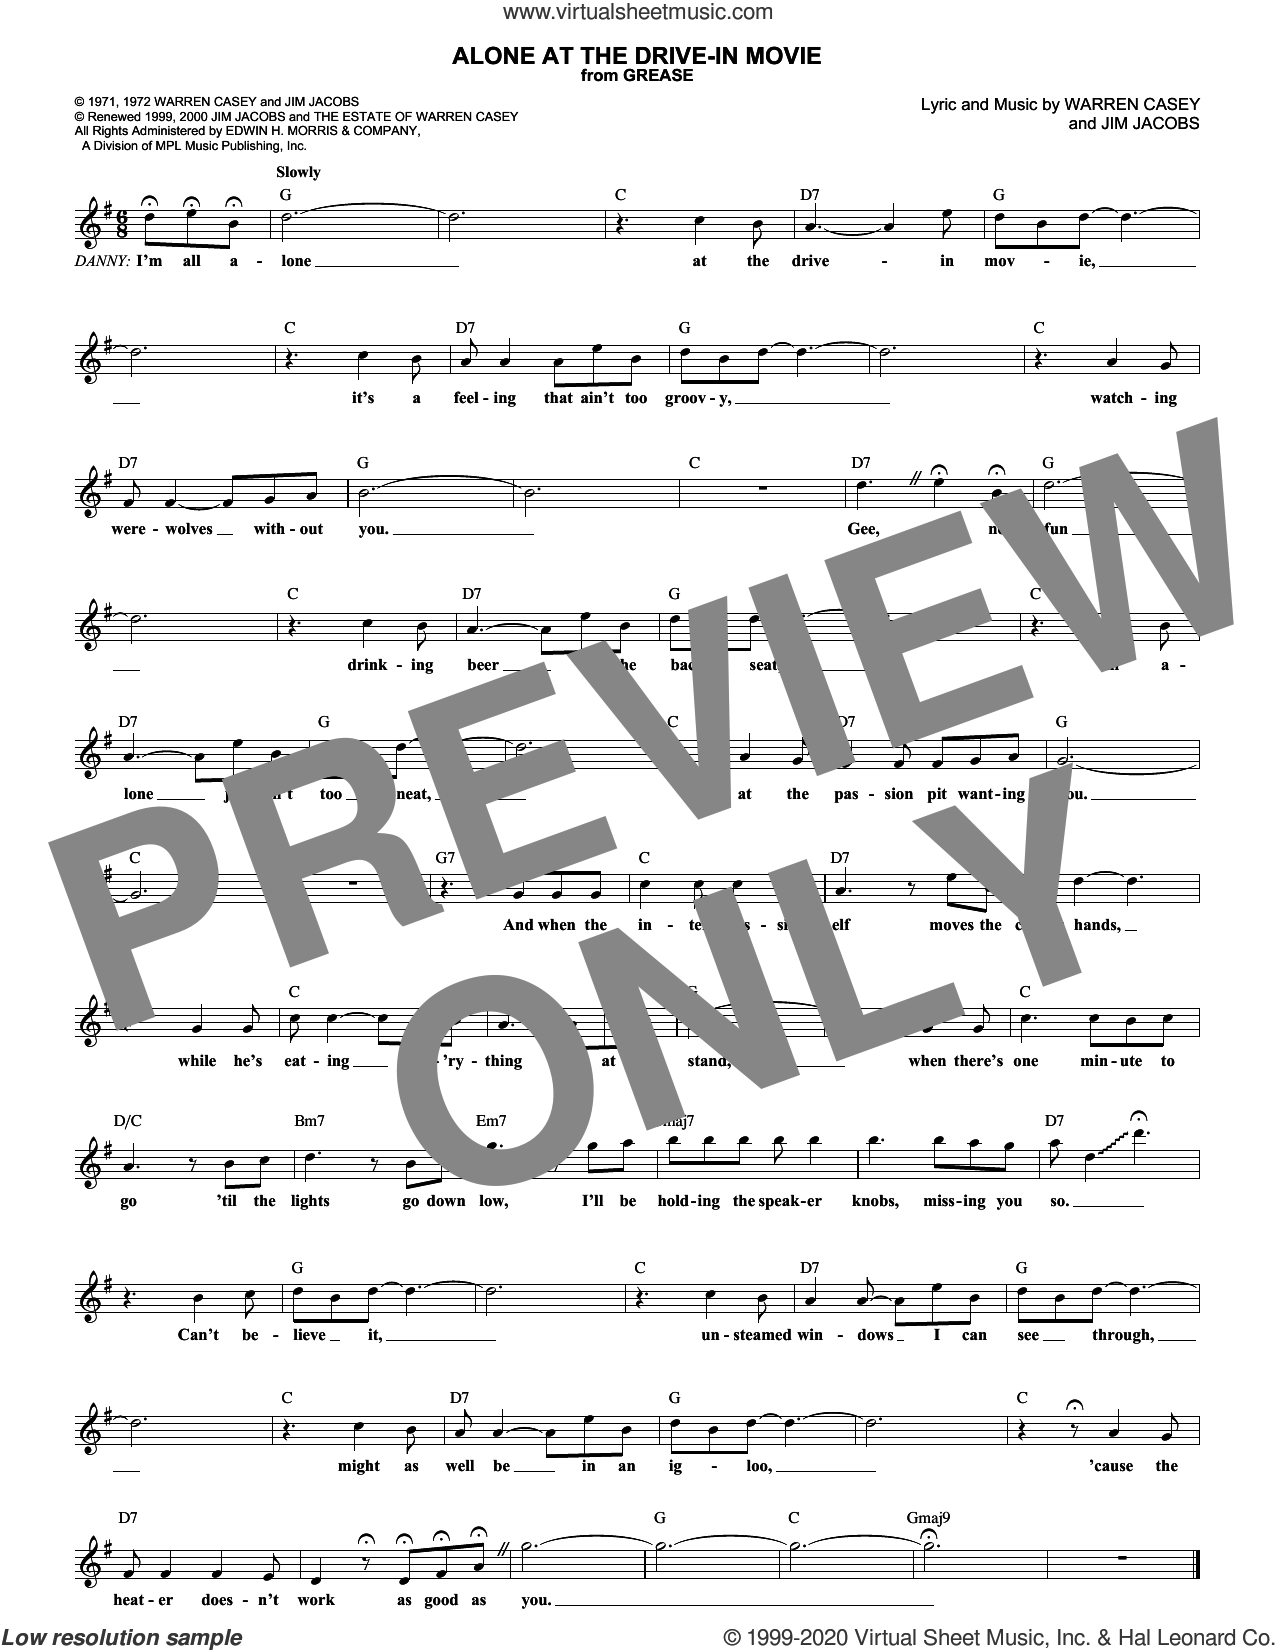 Alone At The Drive-In Movie sheet music for voice and other instruments (fake book) by Jim Jacobs and Warren Casey, intermediate skill level